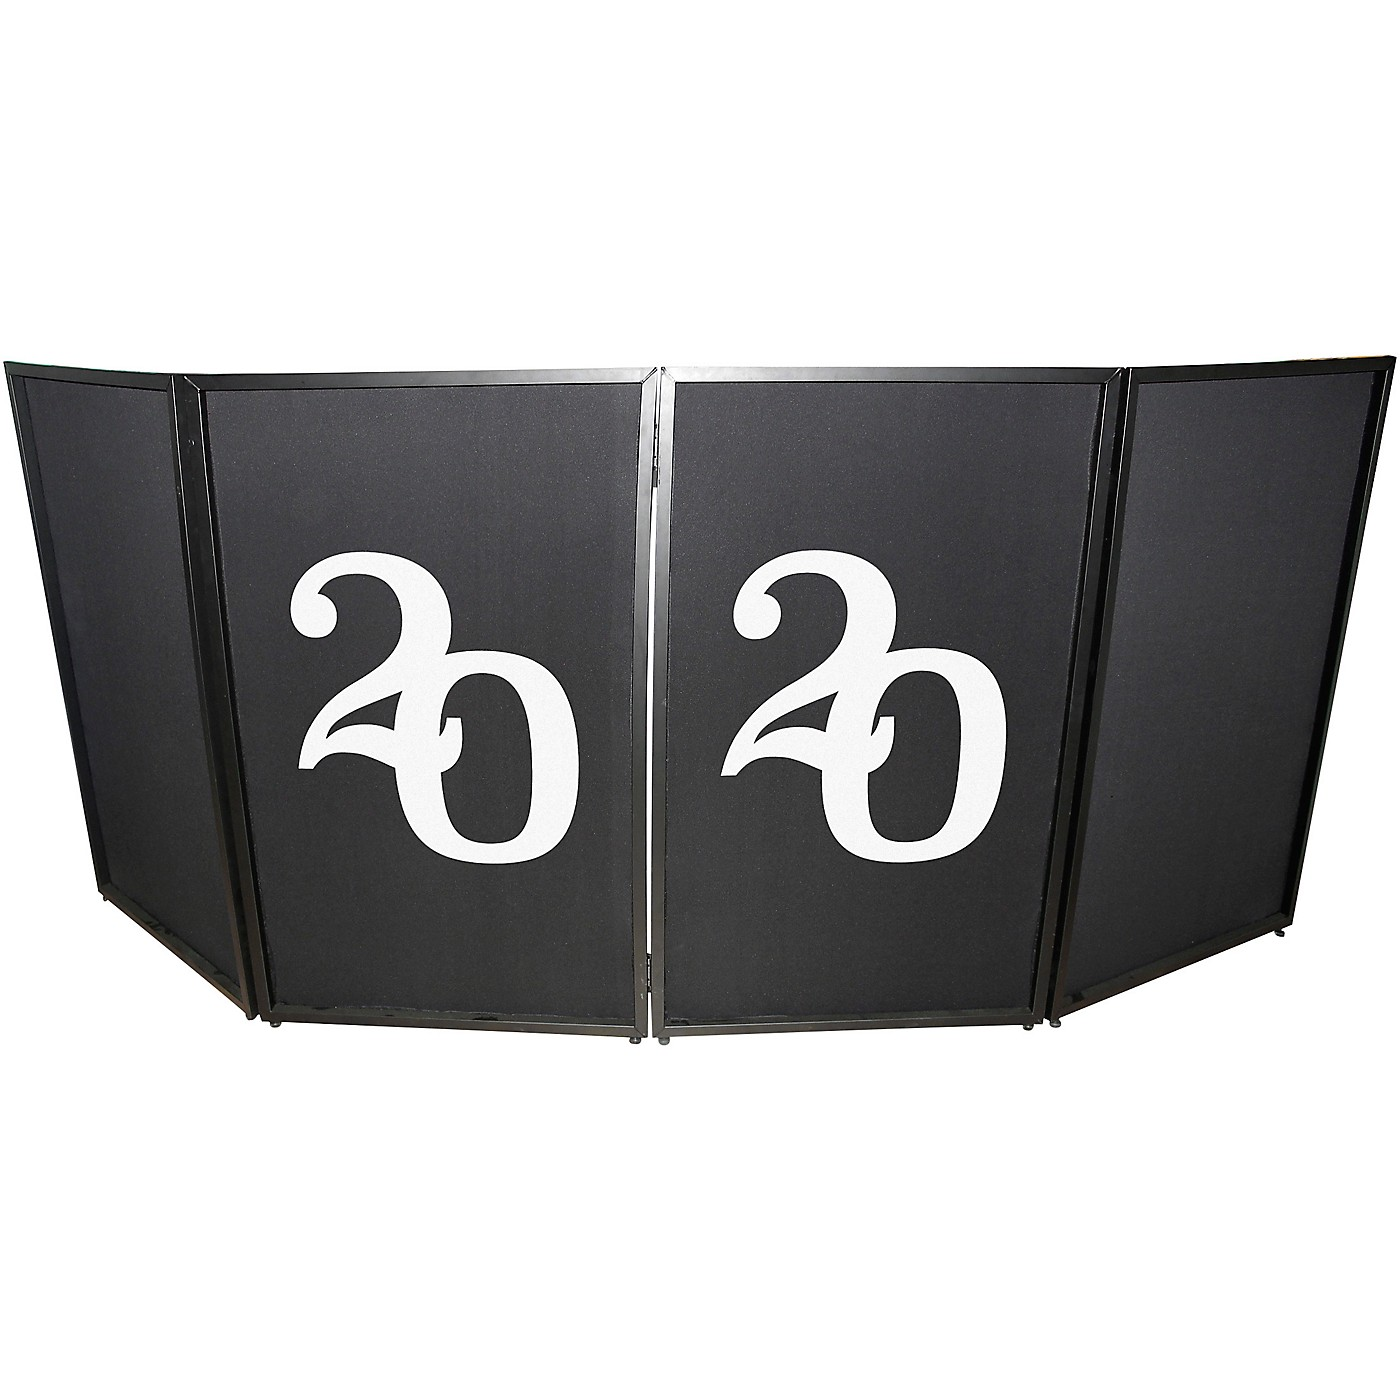 ProX XF-S2020X2 2020 New Year Facade Enhancement Scrims - White Numbers on Black | Set of Two thumbnail